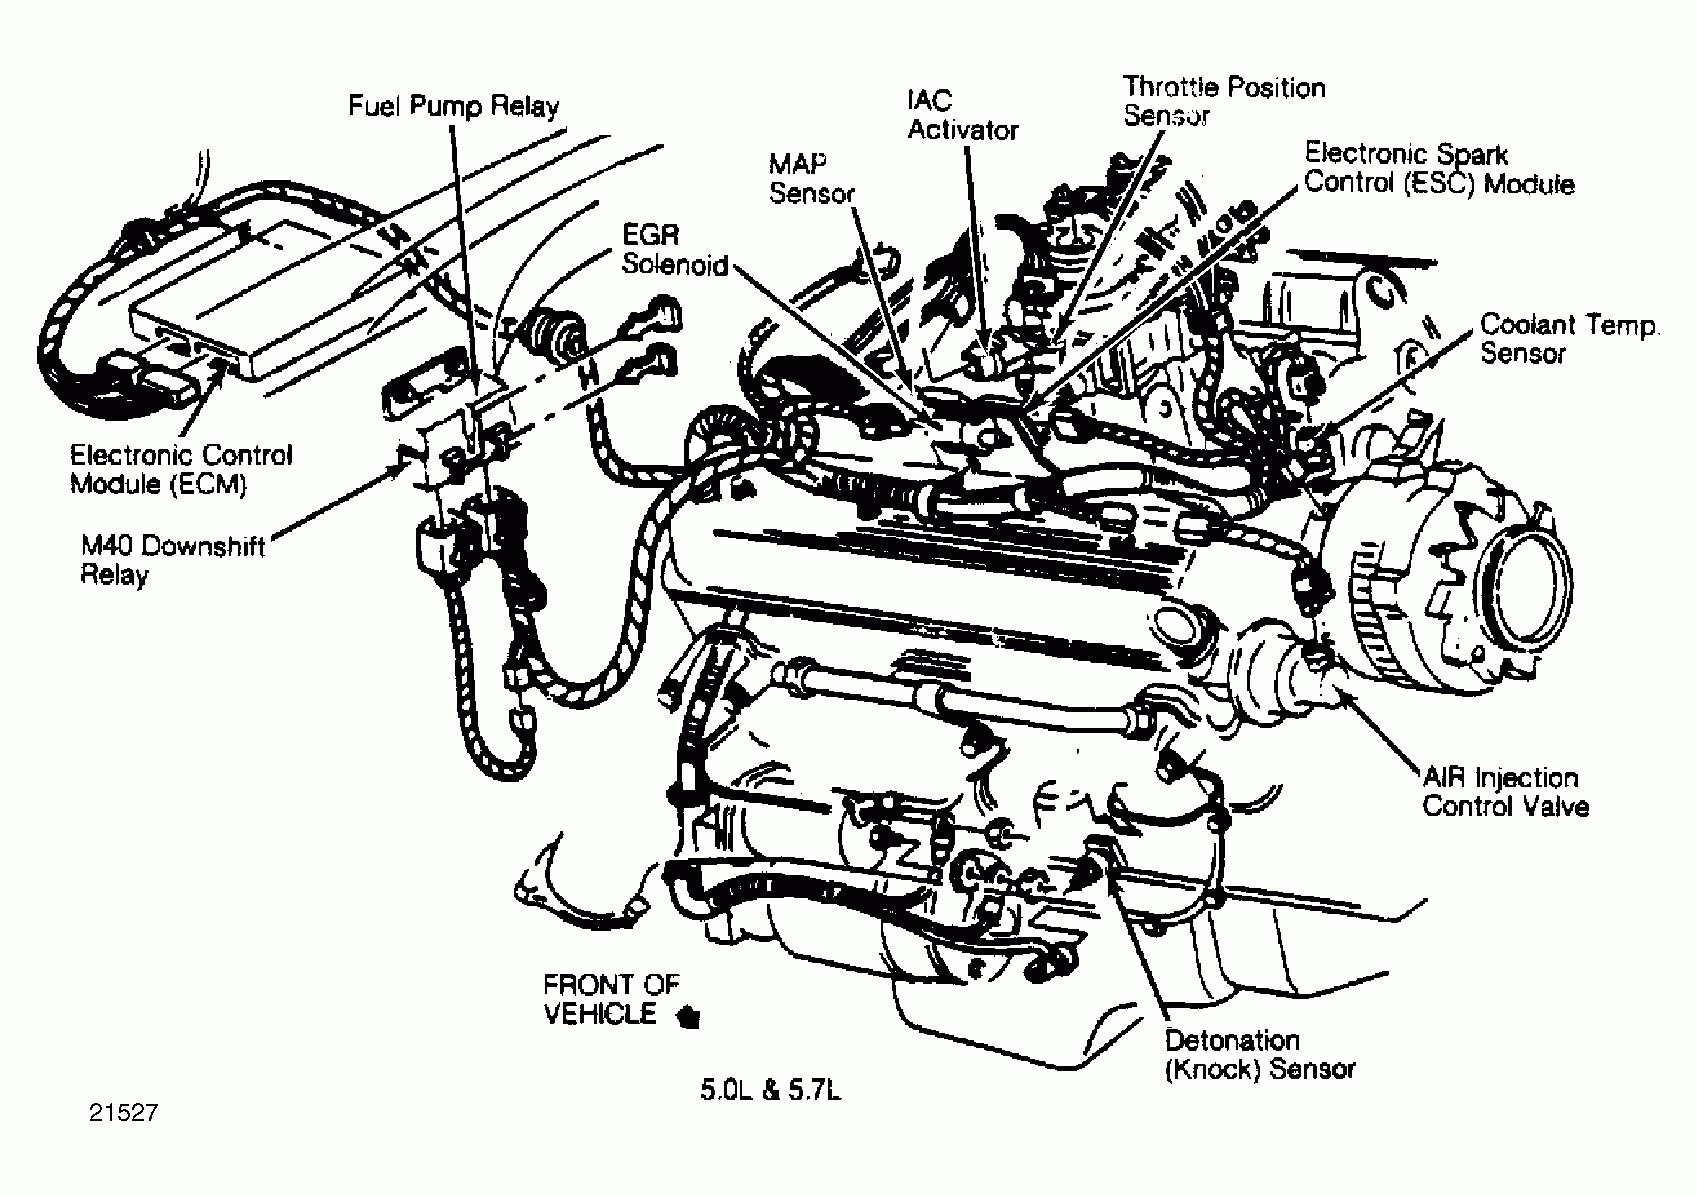 hight resolution of 2000 chevy blazer engine diagram in addition how to find vacuum leak 1994 chevy camaro engine diagram chevrolet s10 v6 engine diagram